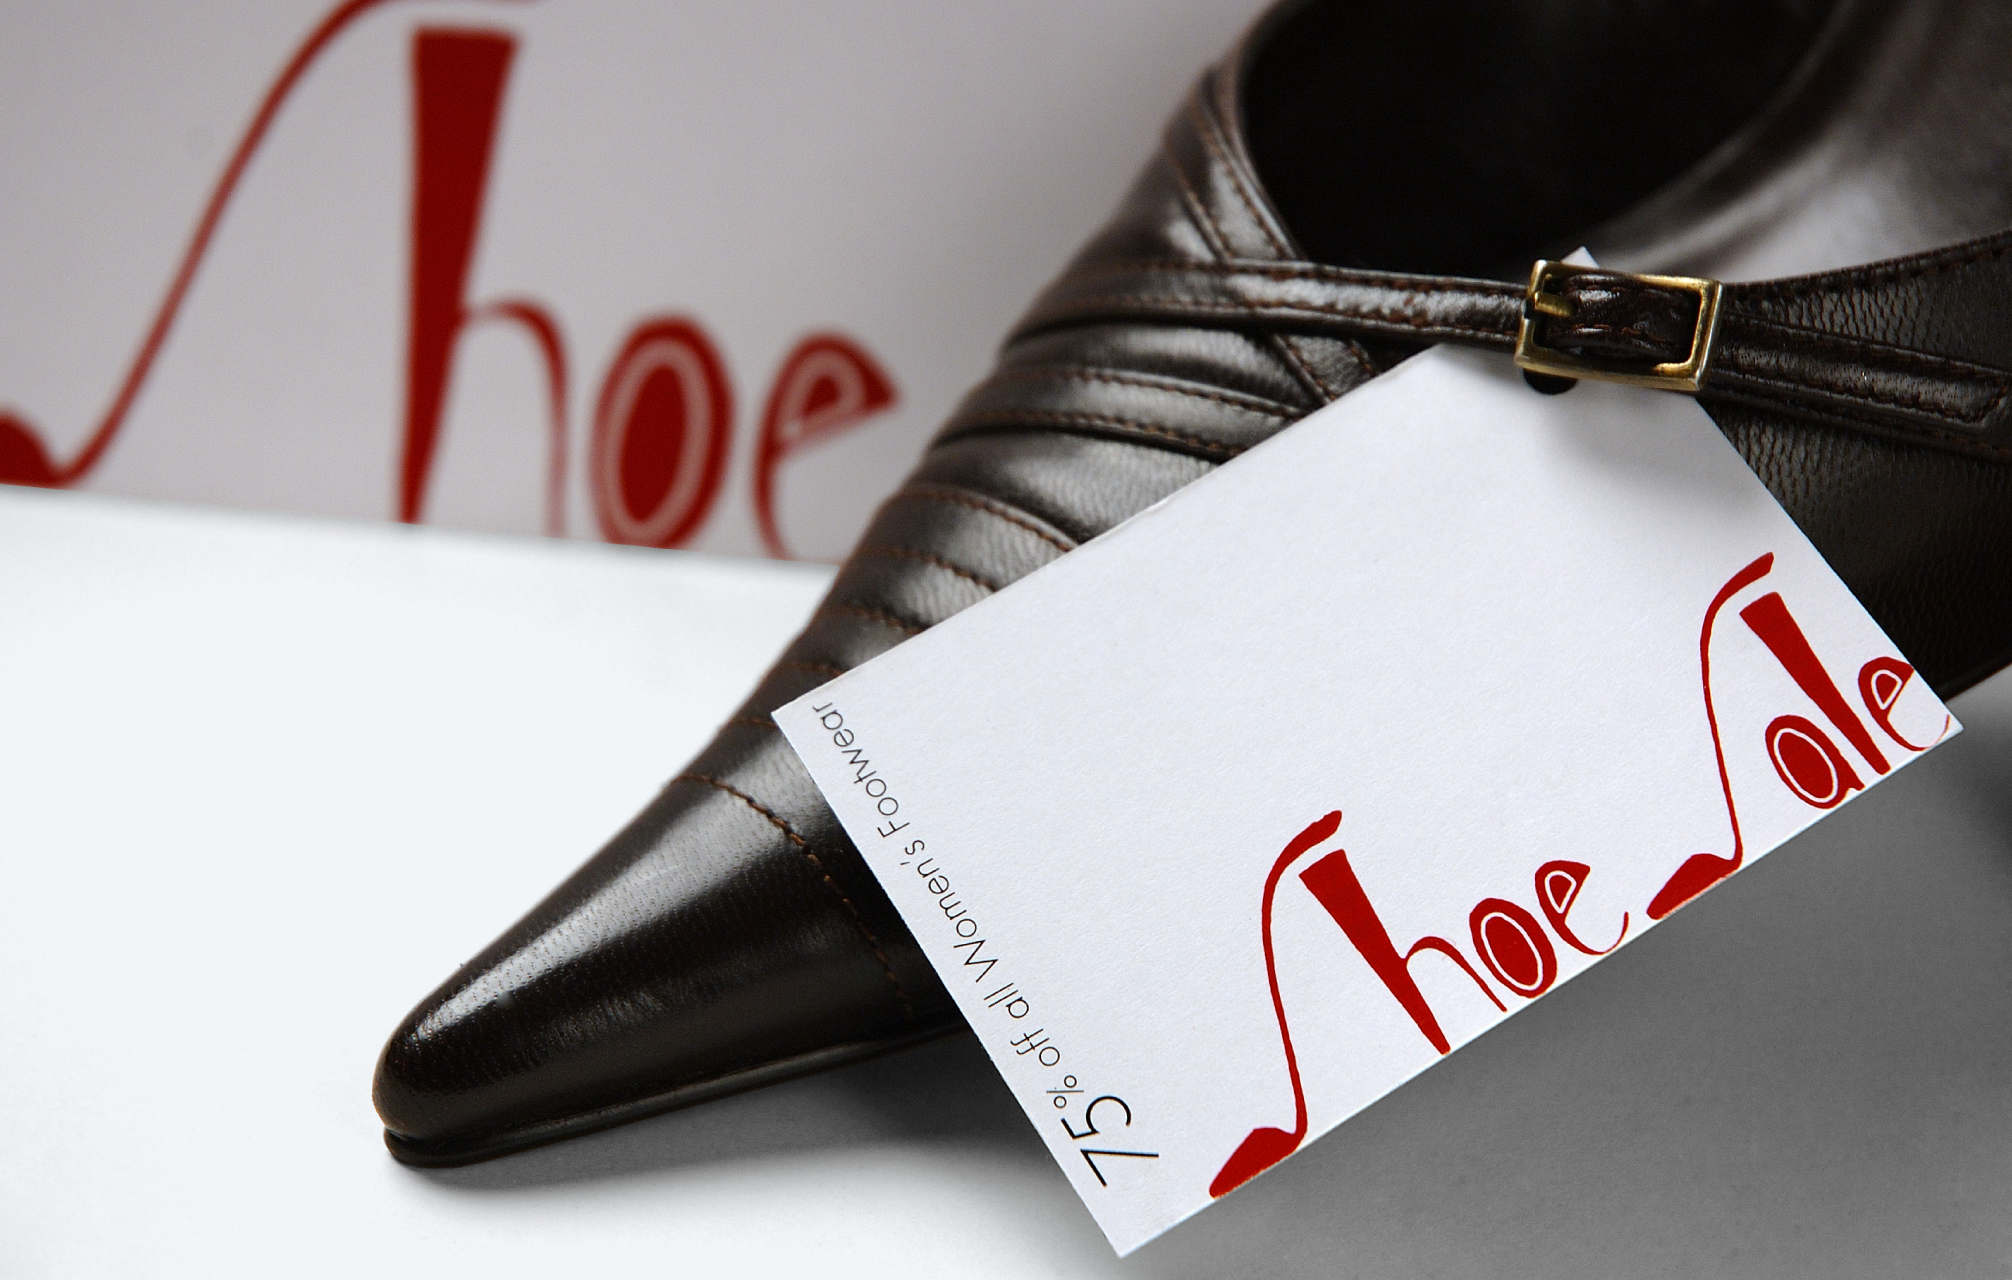 SHOE SALE / hand lettering for in-store display & promotional materials